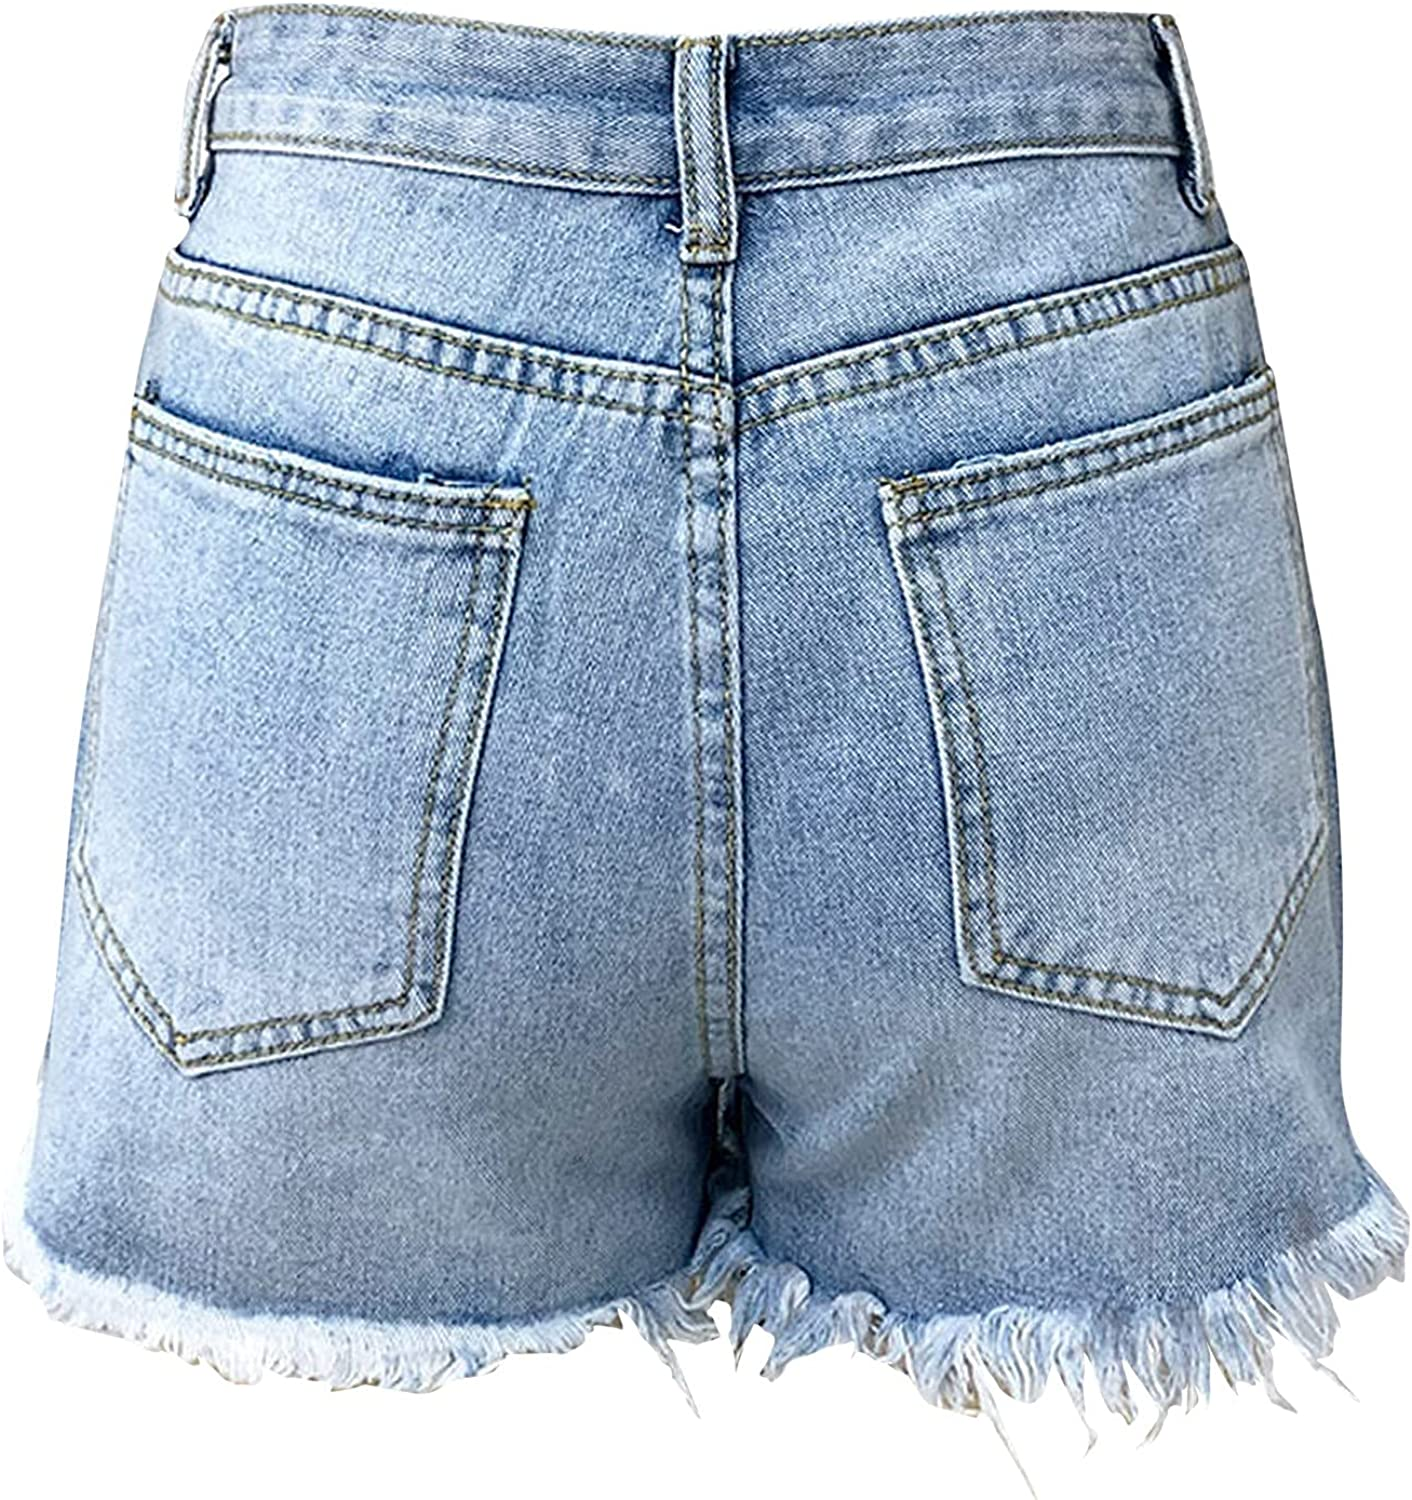 Women's Denim Shorts Summer Casual Low Waisted Frayed Shorts Sexy Buttocks New Hole Tassel Trimming Short Jeans